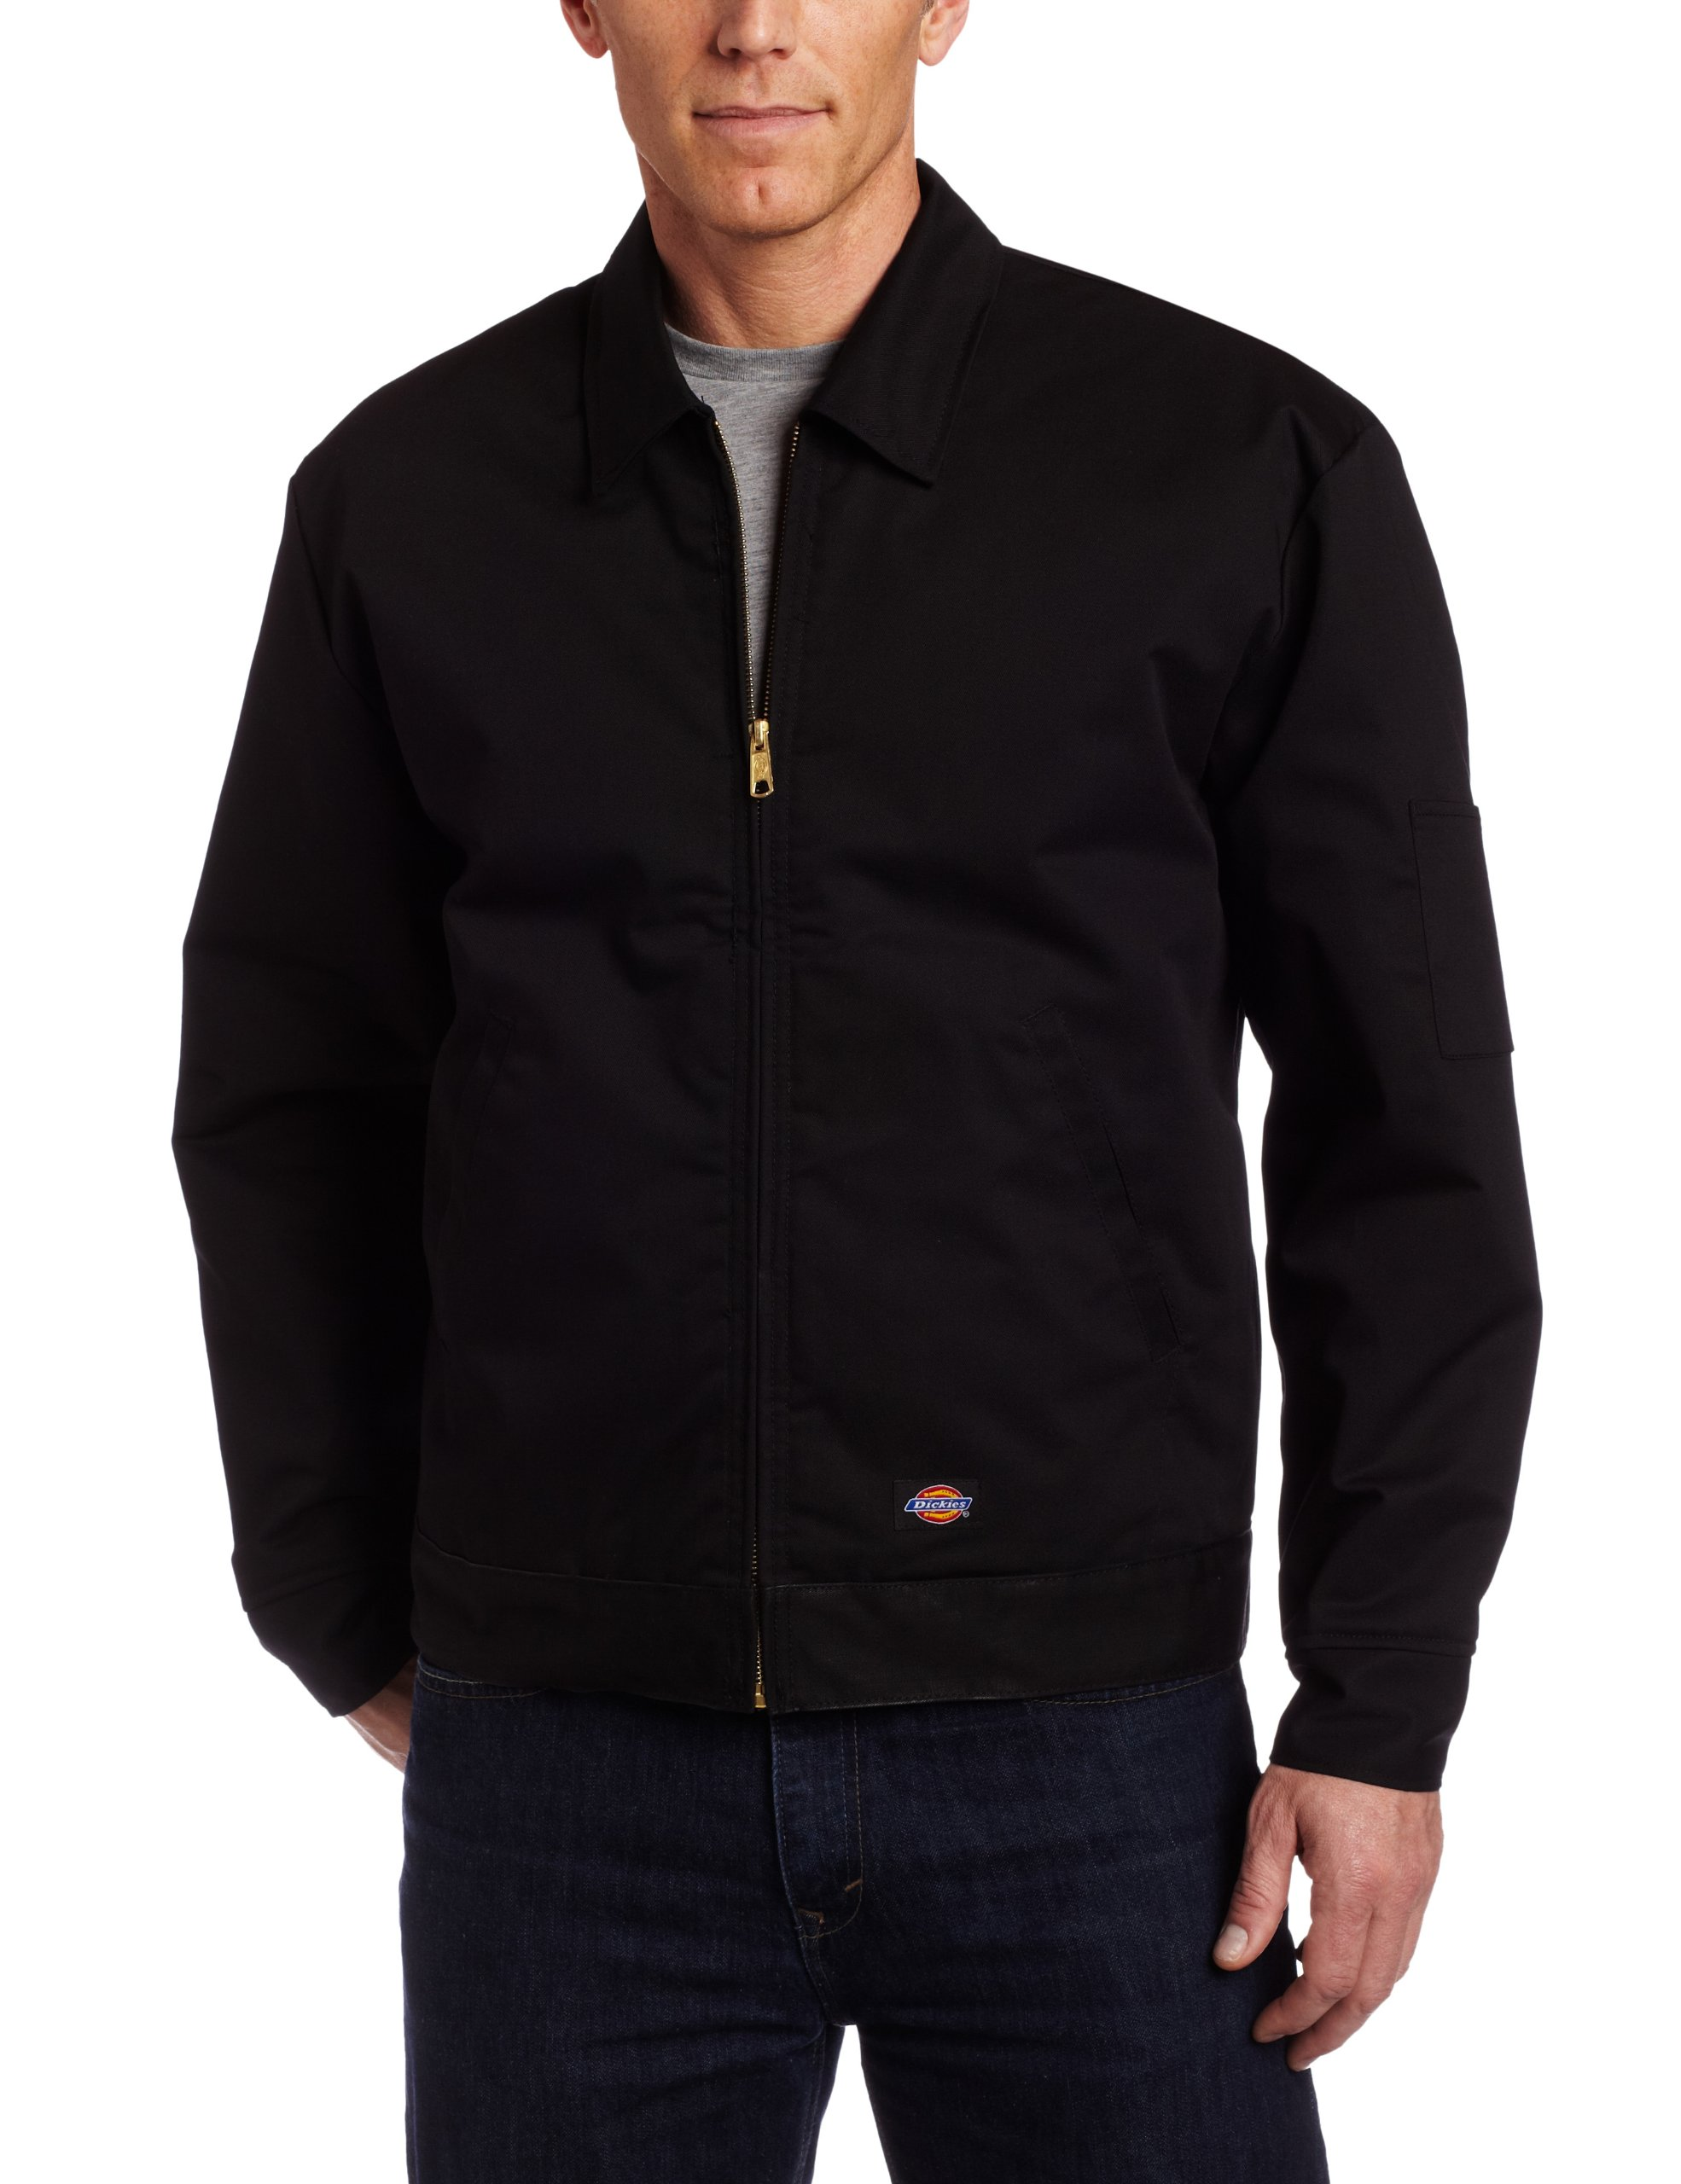 Dickies Men's Big-Tall Insulated Eisenhower Jacket, Black, Large Tall